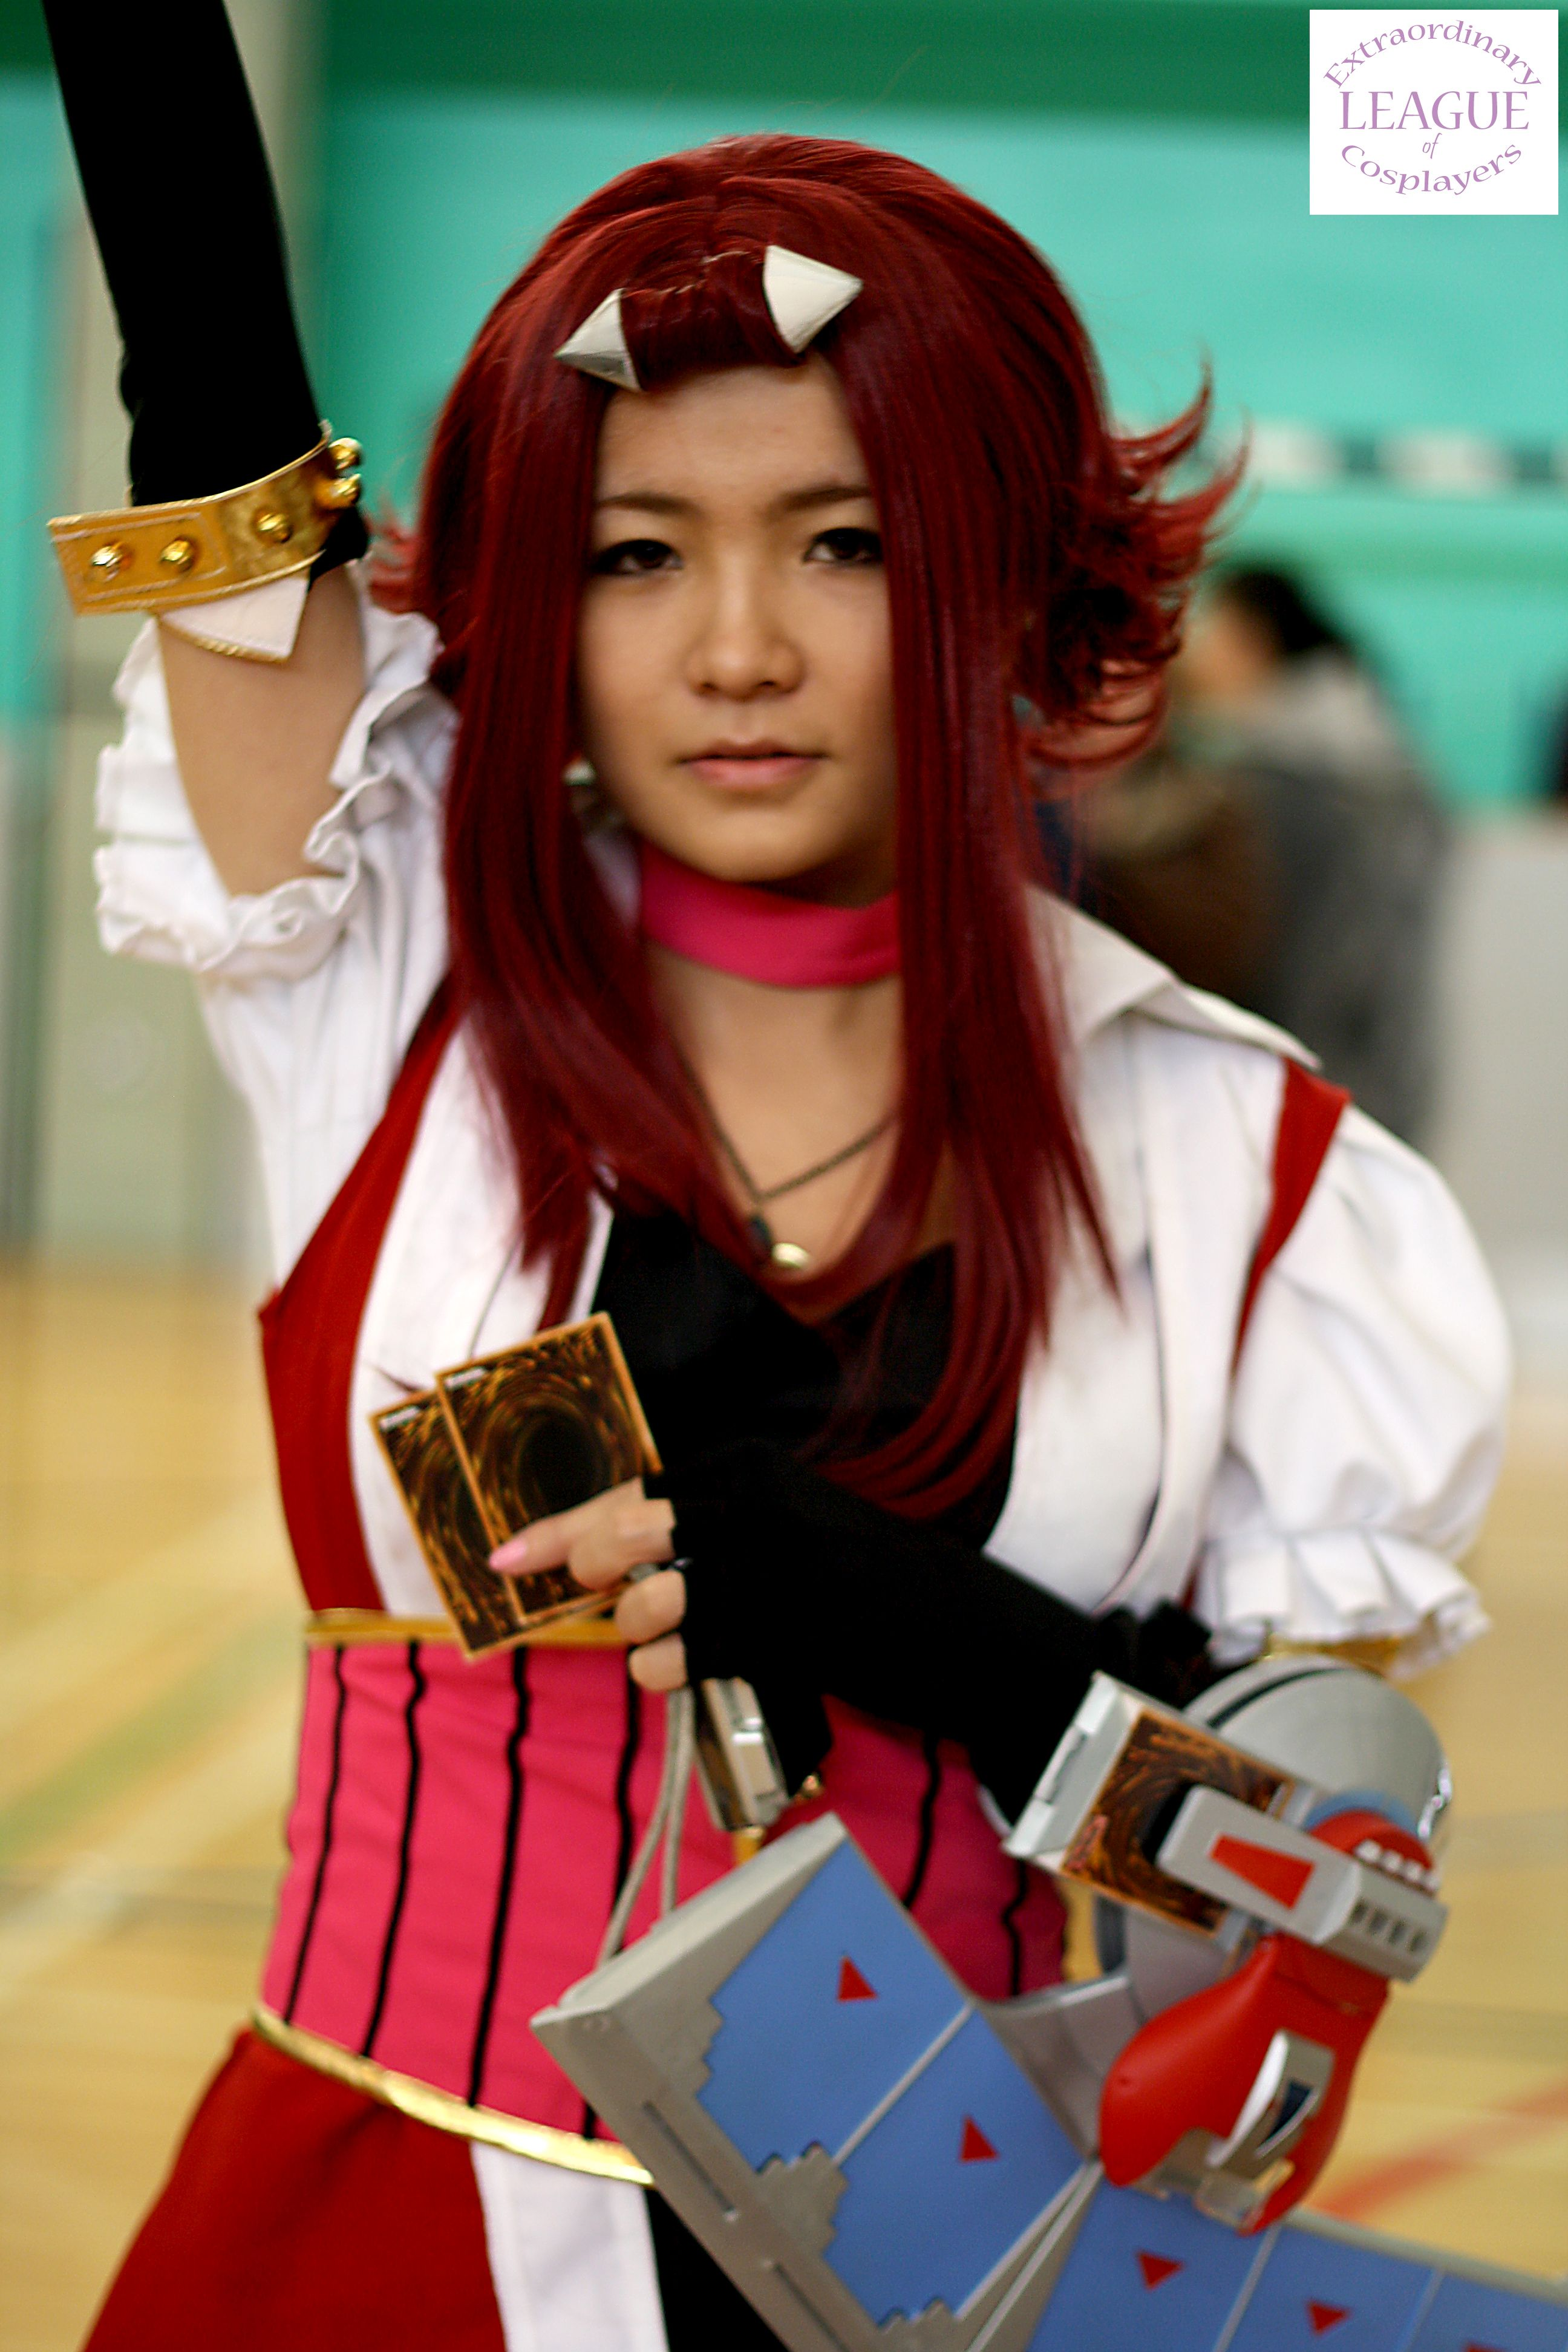 Pin by Court Fansler on Yugioh Cosplay   Yugioh, Cosplay, Pics